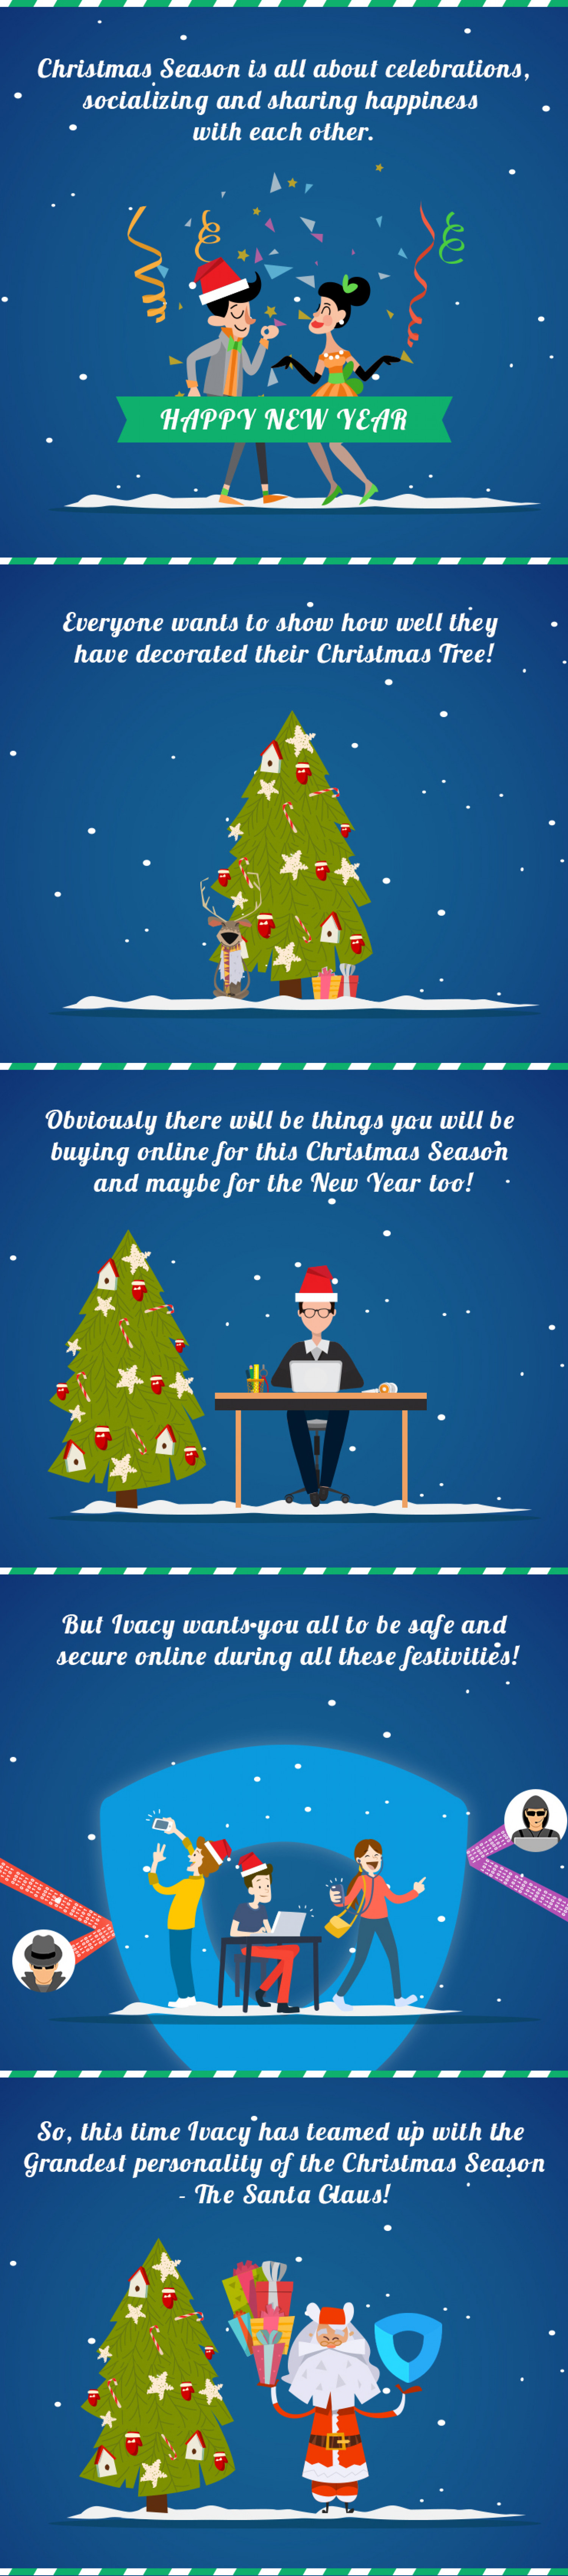 85% Christmas Discount - Ivacy VPN Infographic